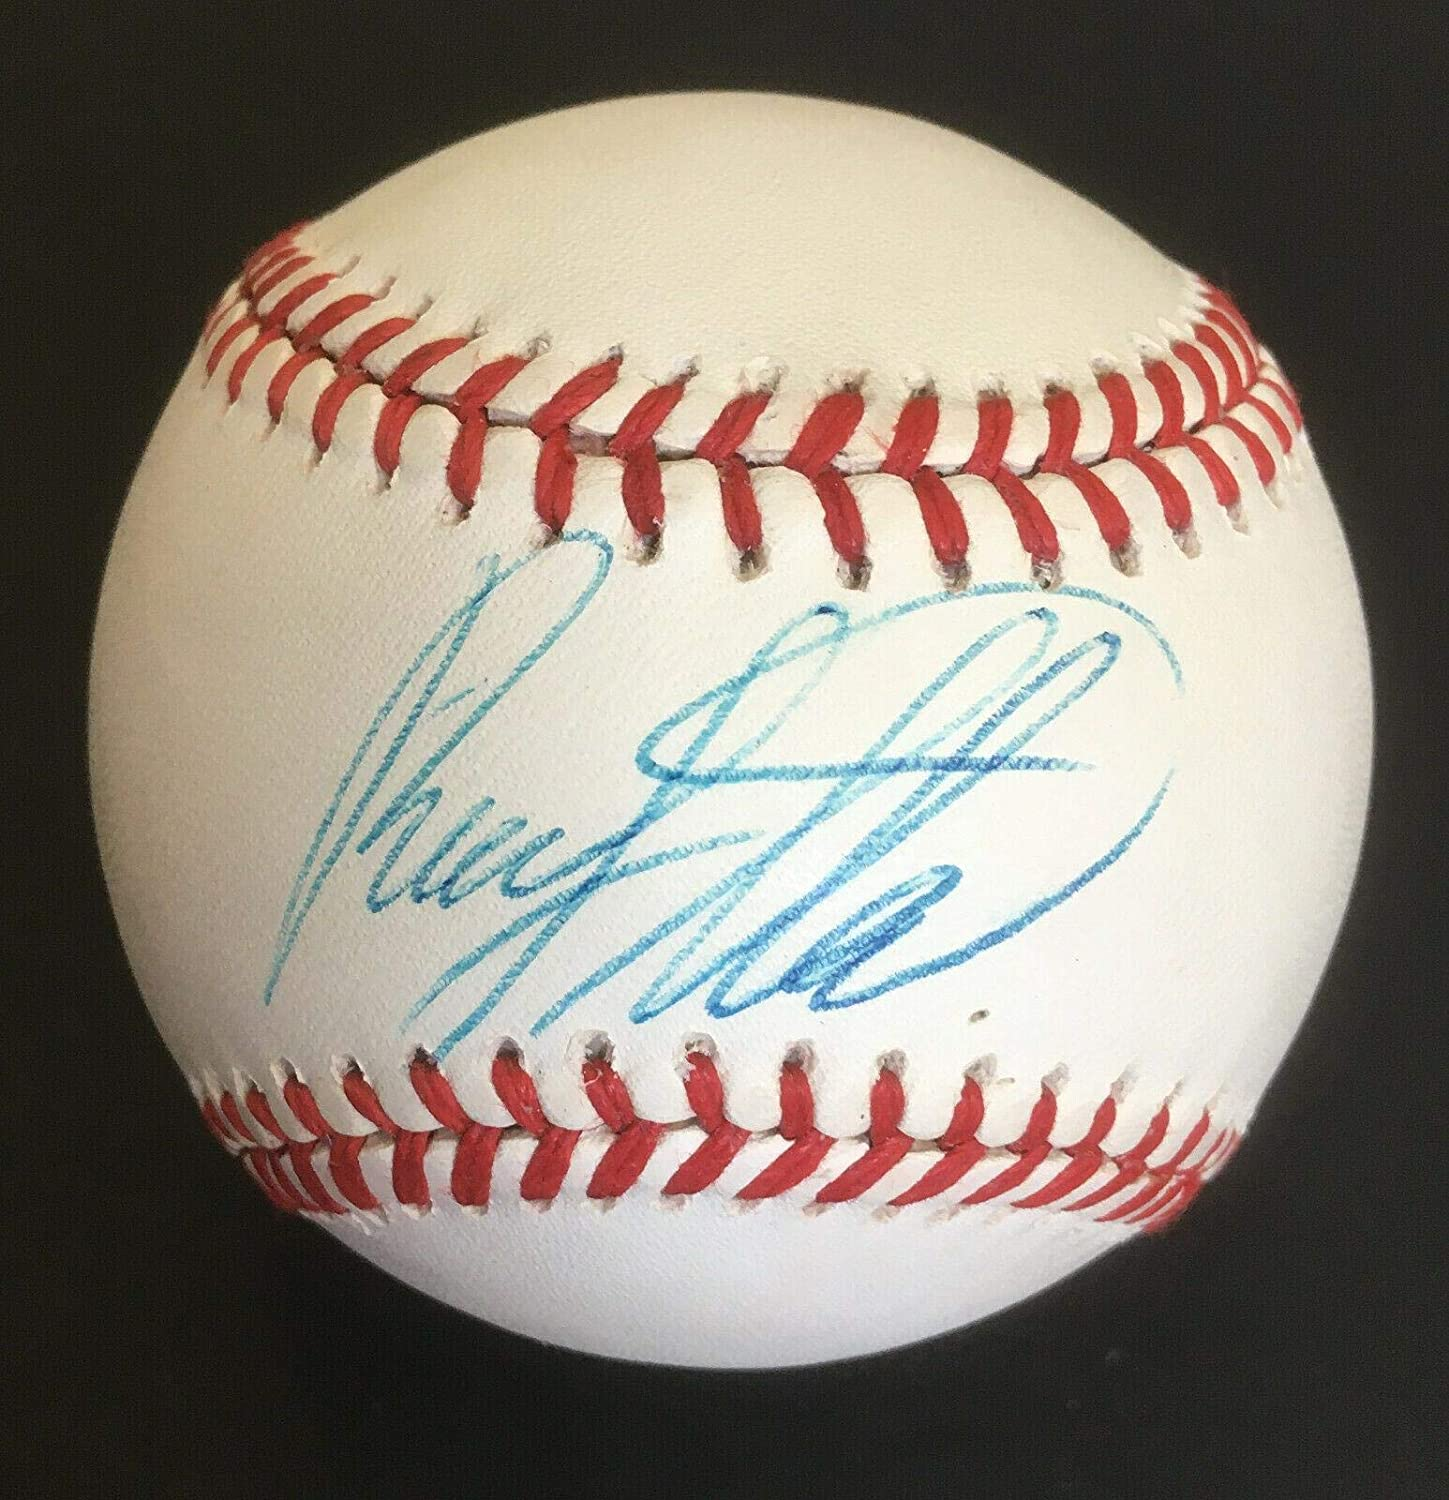 Rusty Staub Signed Ball - Expos Official NL COA - PSA/DNA Certified - Autographed Baseballs